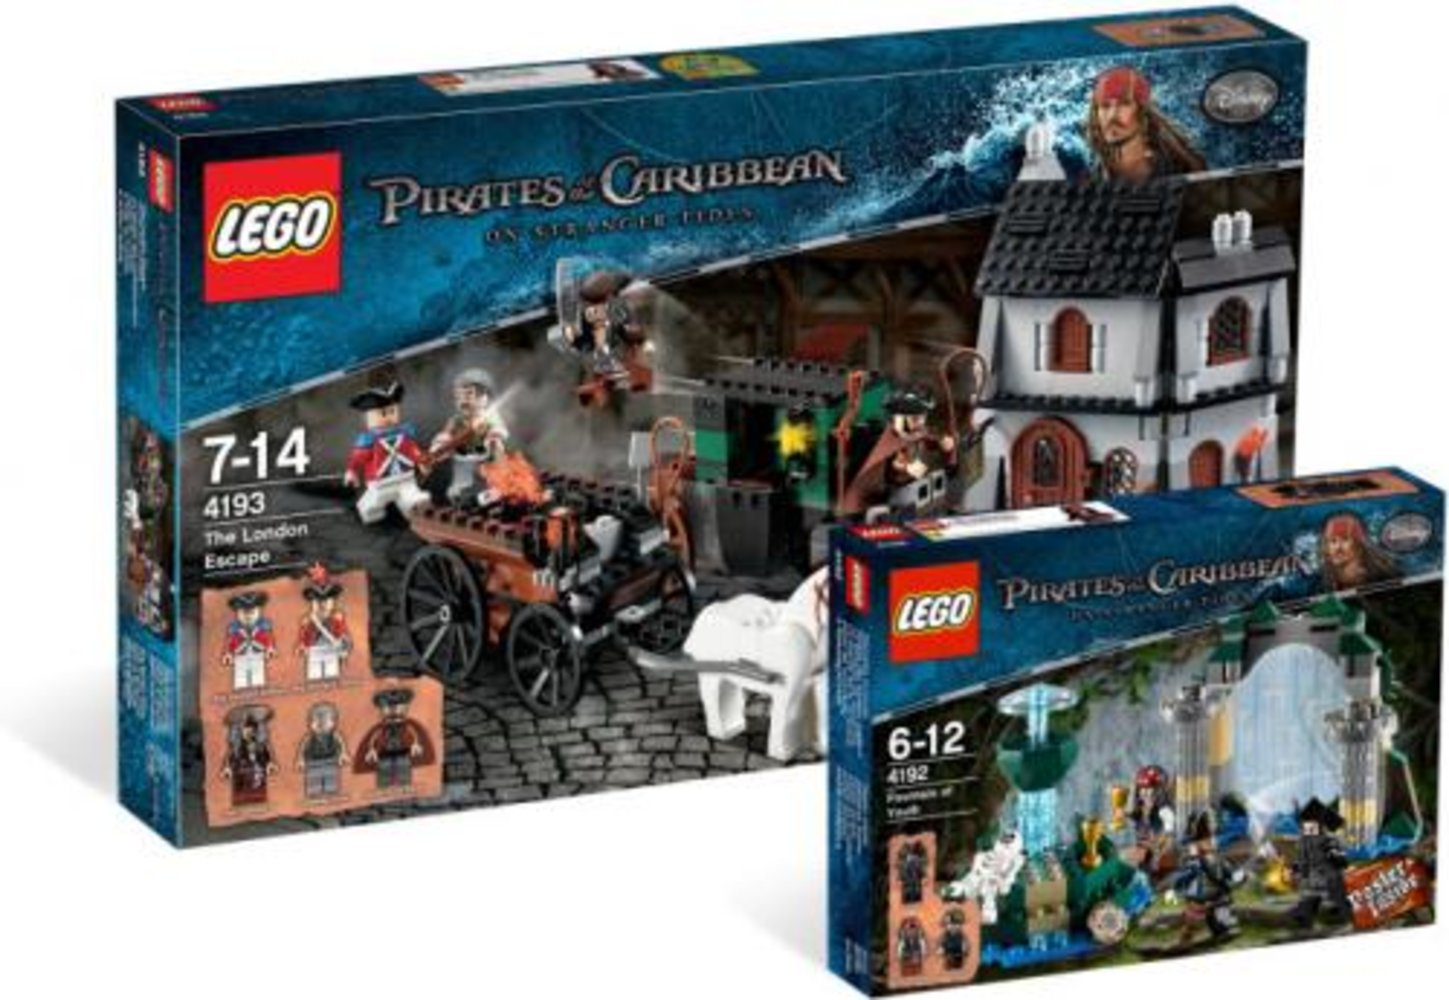 Pirates of the Caribbean: On Stranger Tides Collection